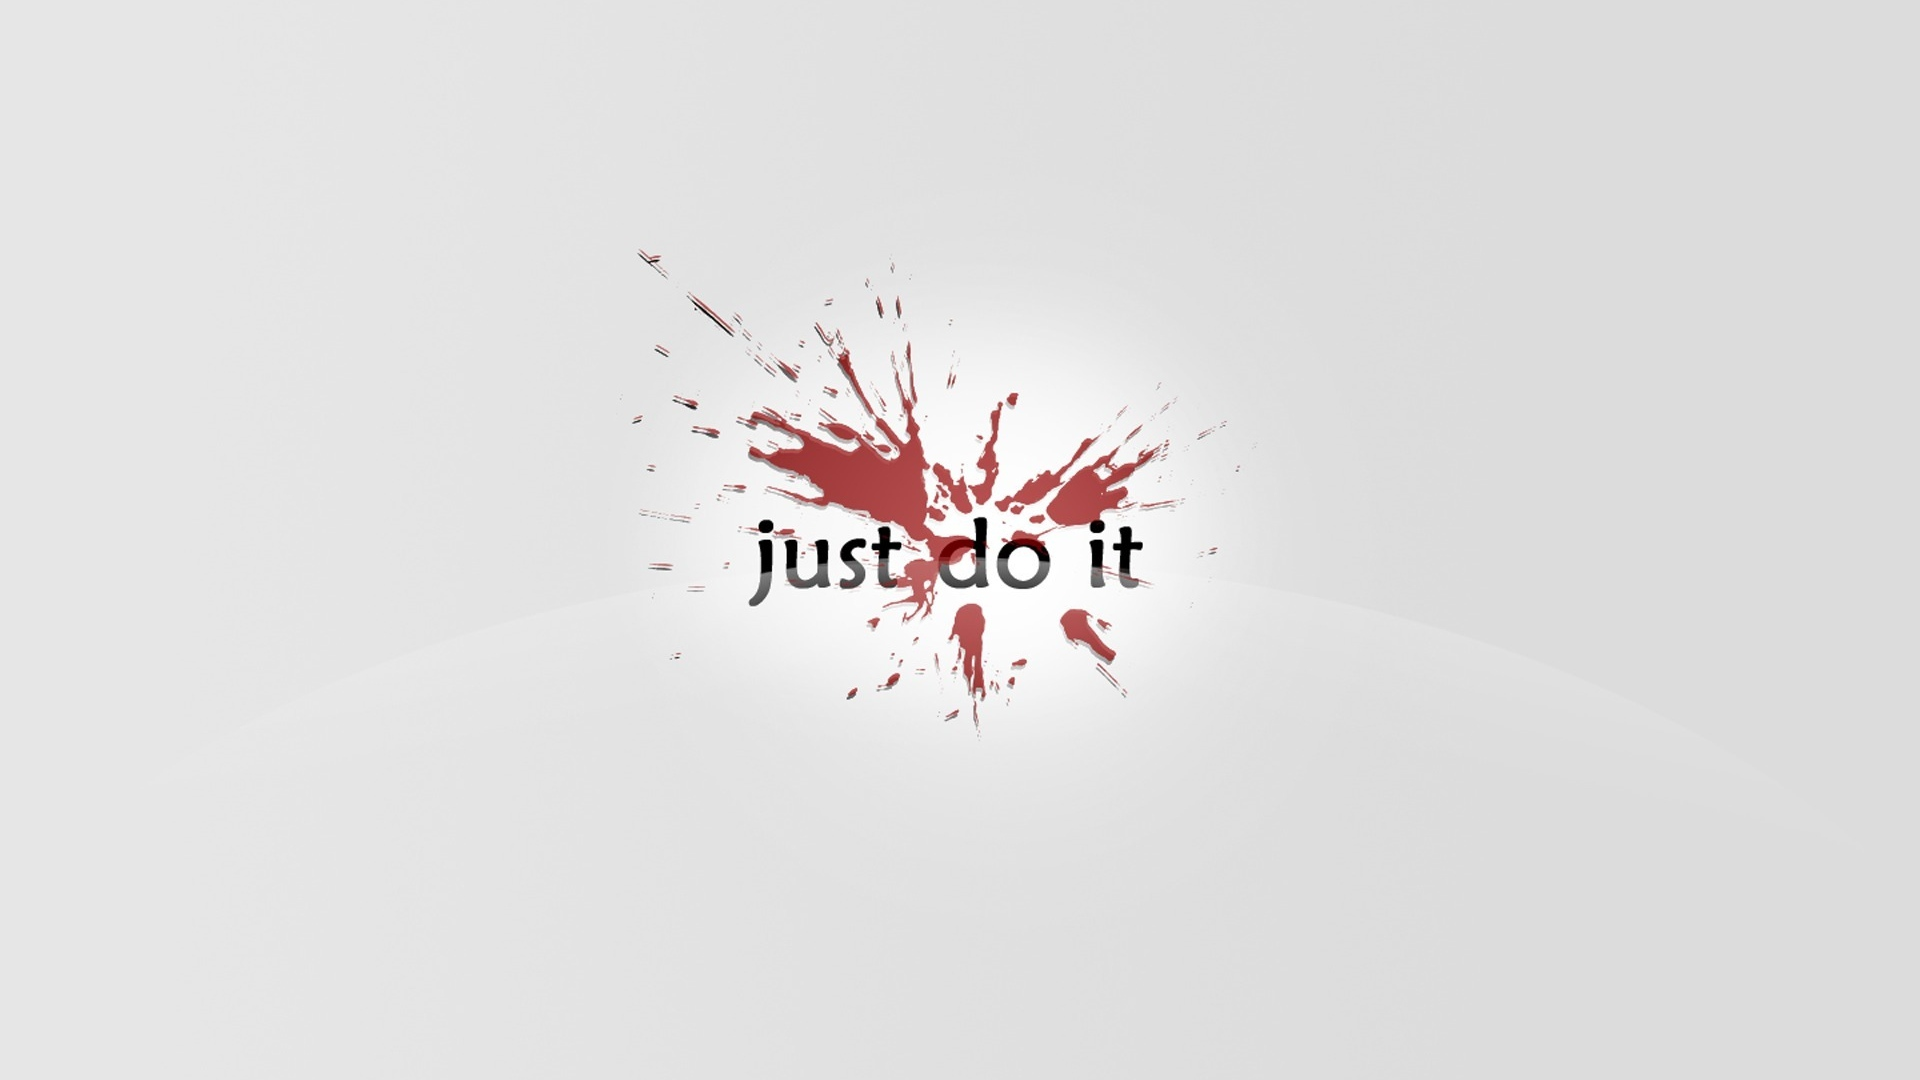 Download wallpaper 1920x1080 nike just do it blob full hd 1080p nikejustdoitblob426411920x1080g voltagebd Choice Image